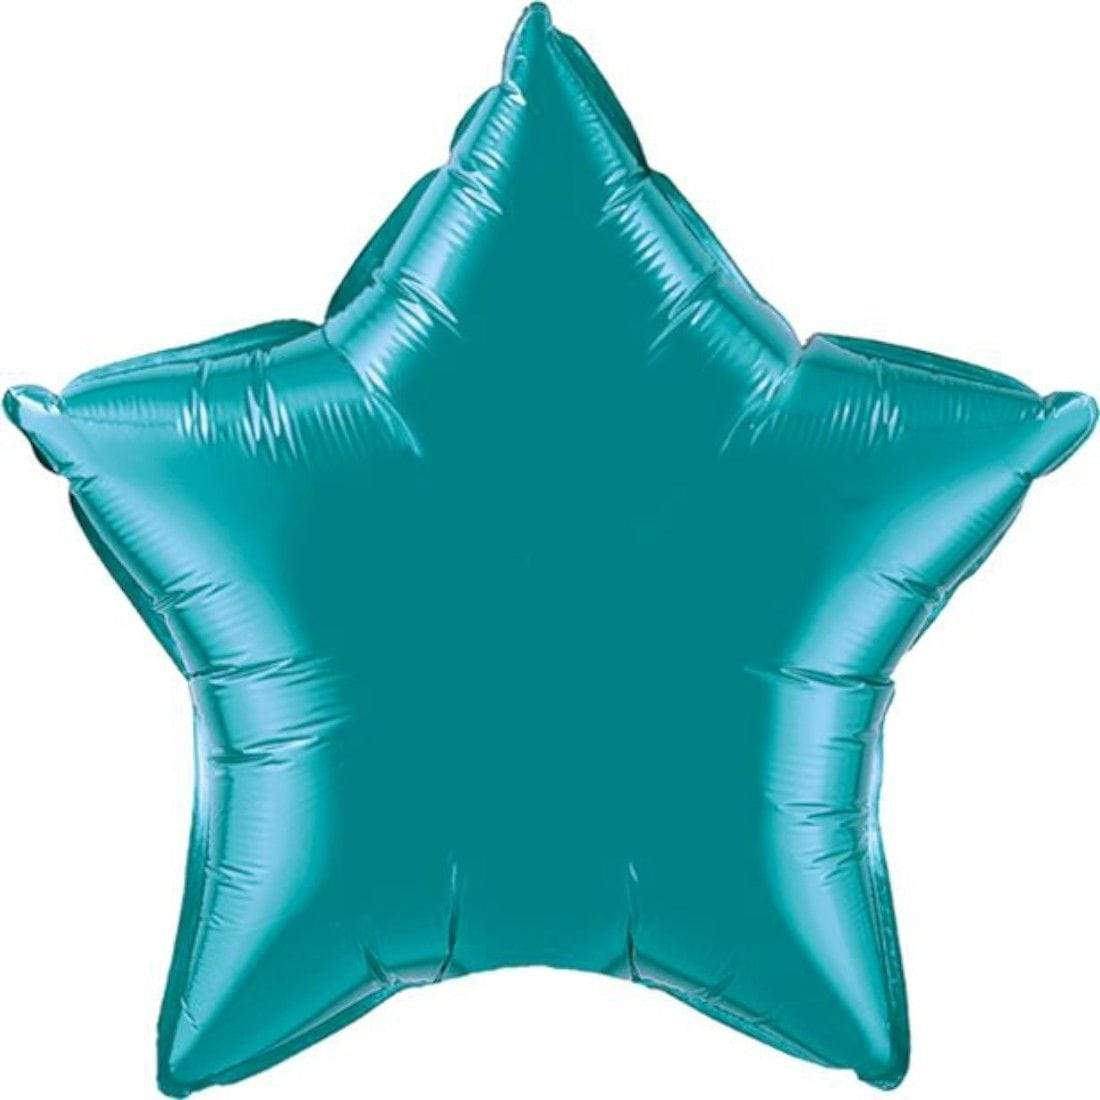 Teal Star Foil Balloon